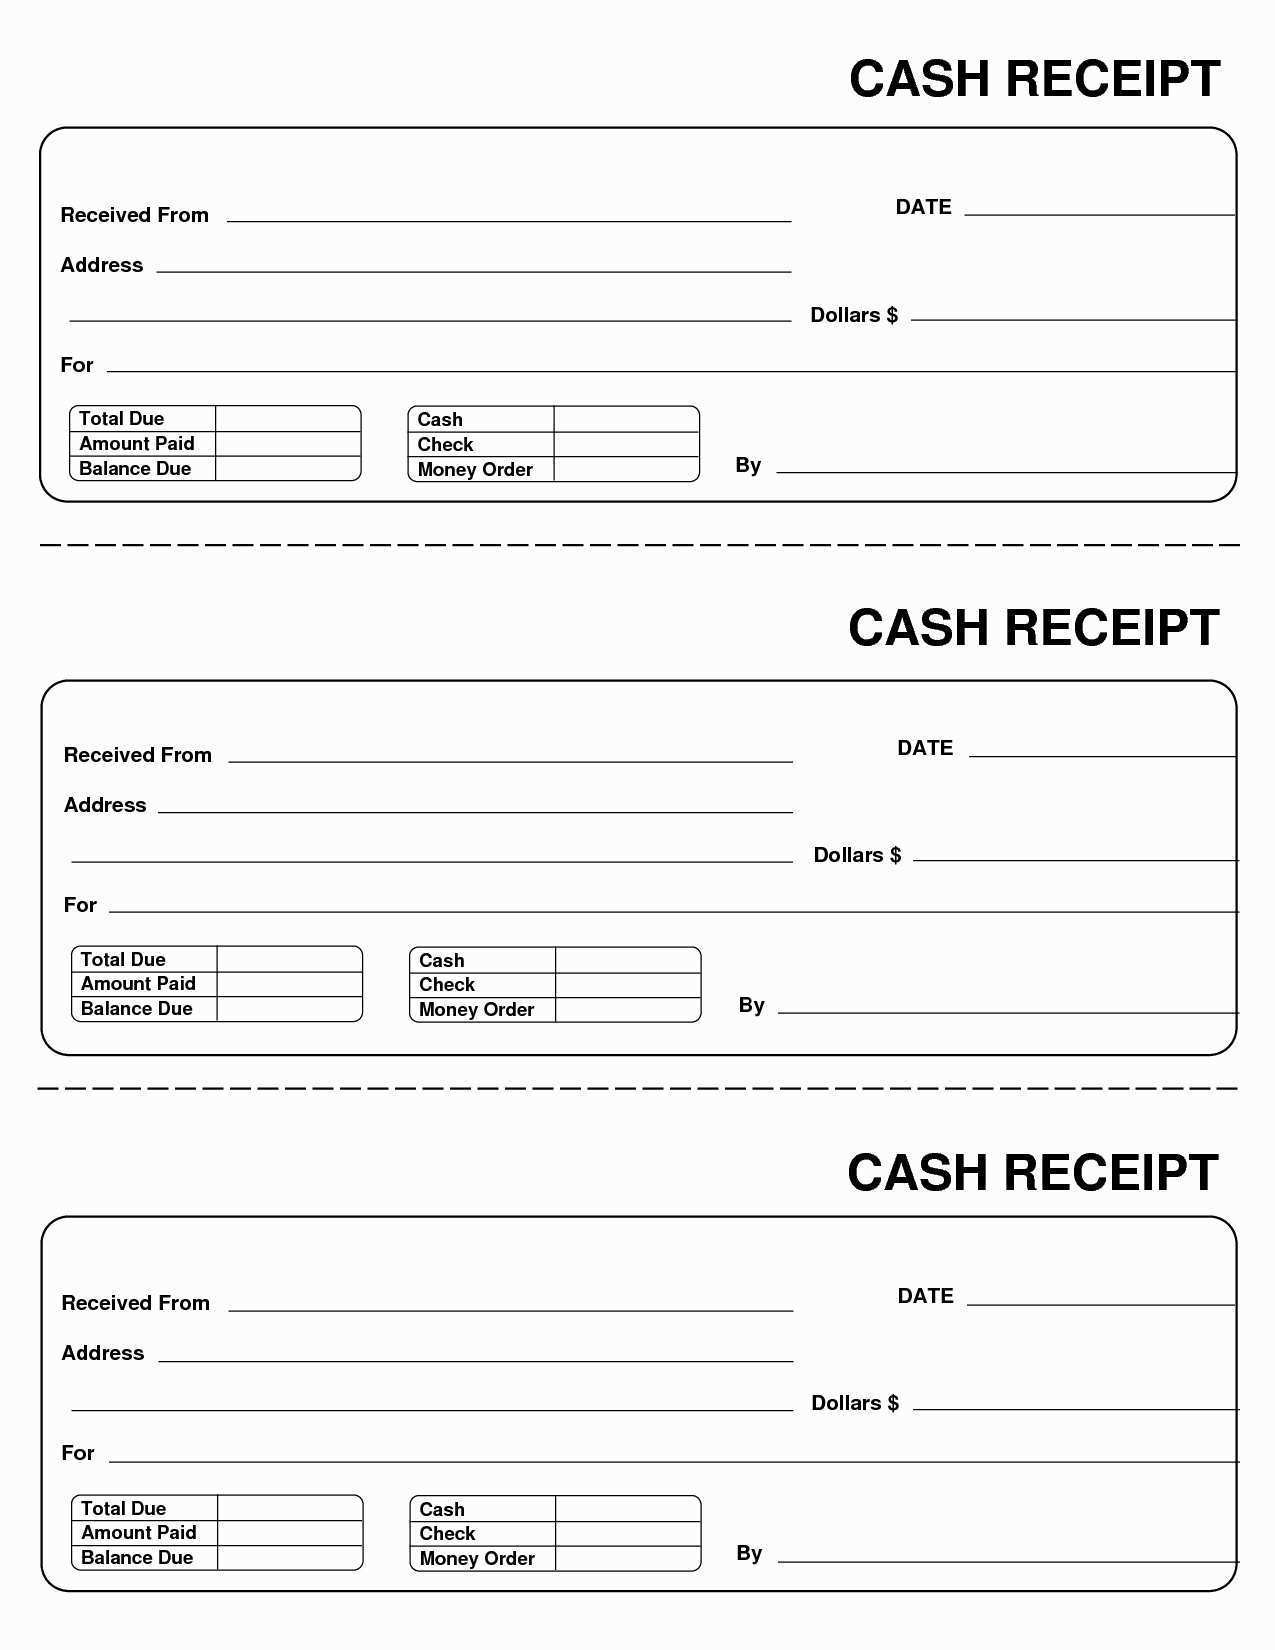 12 Customize Our Free Blank Invoice Receipt Template For Ms Word With Blank Invoice Receipt Template Cards Design Templates